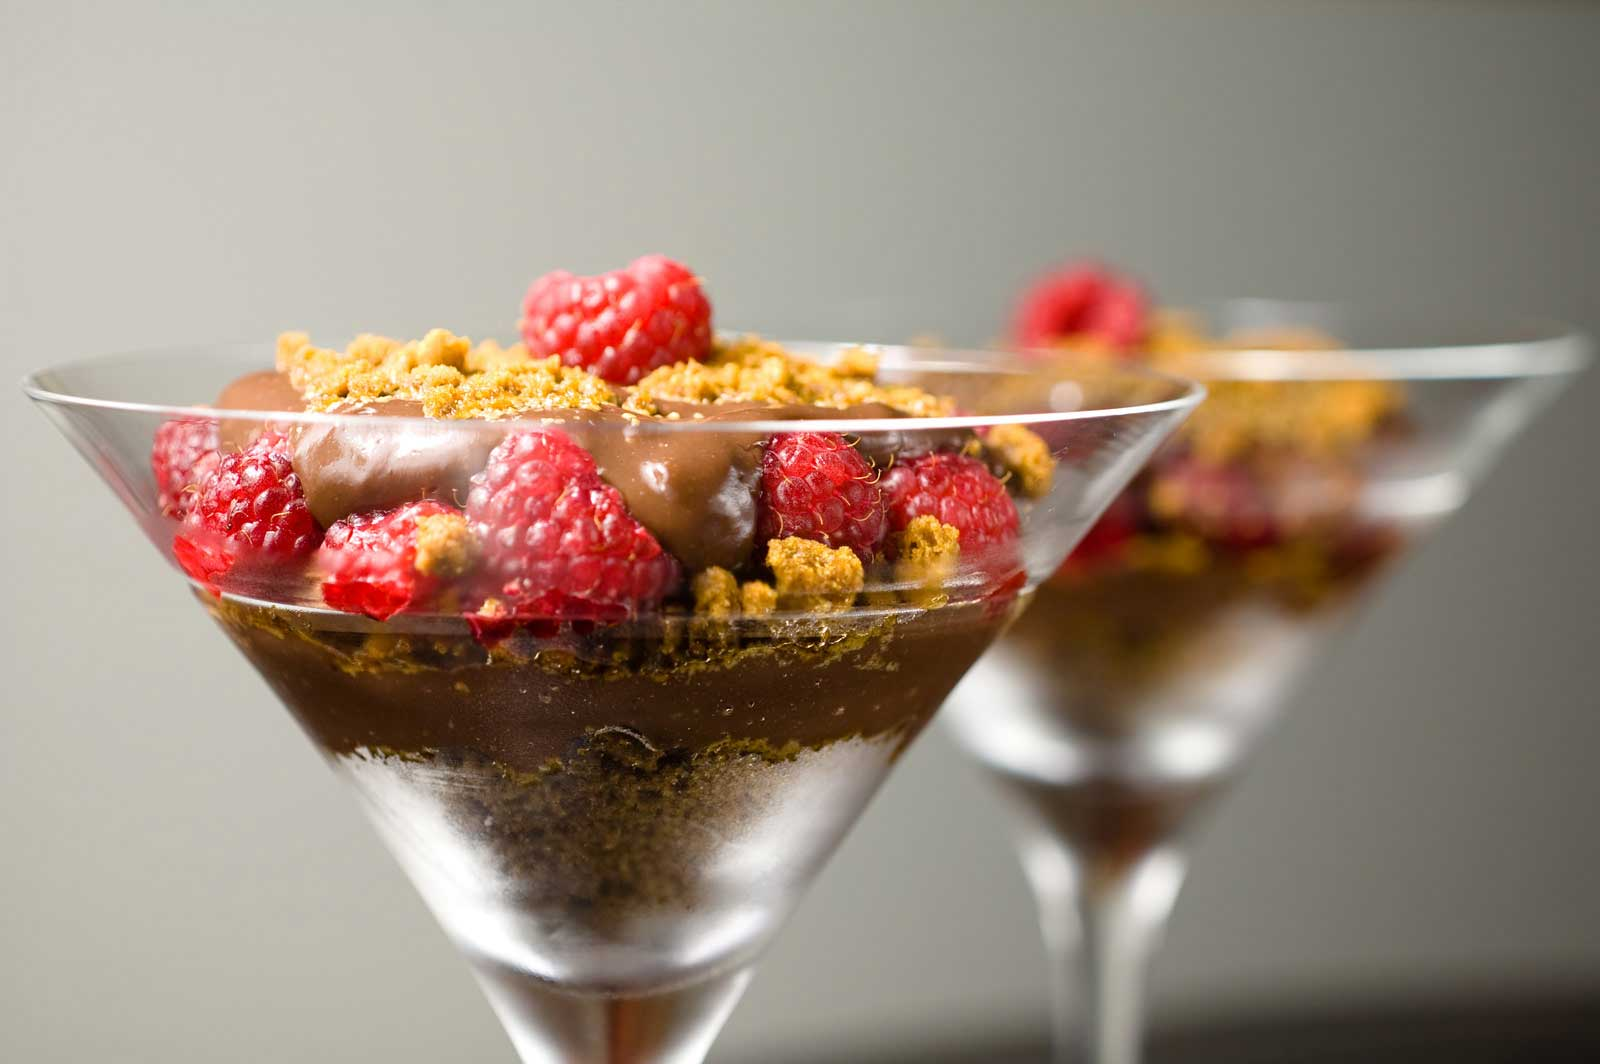 Recipe for chocolate pudding with raspberries and for Mini martini glass dessert recipes